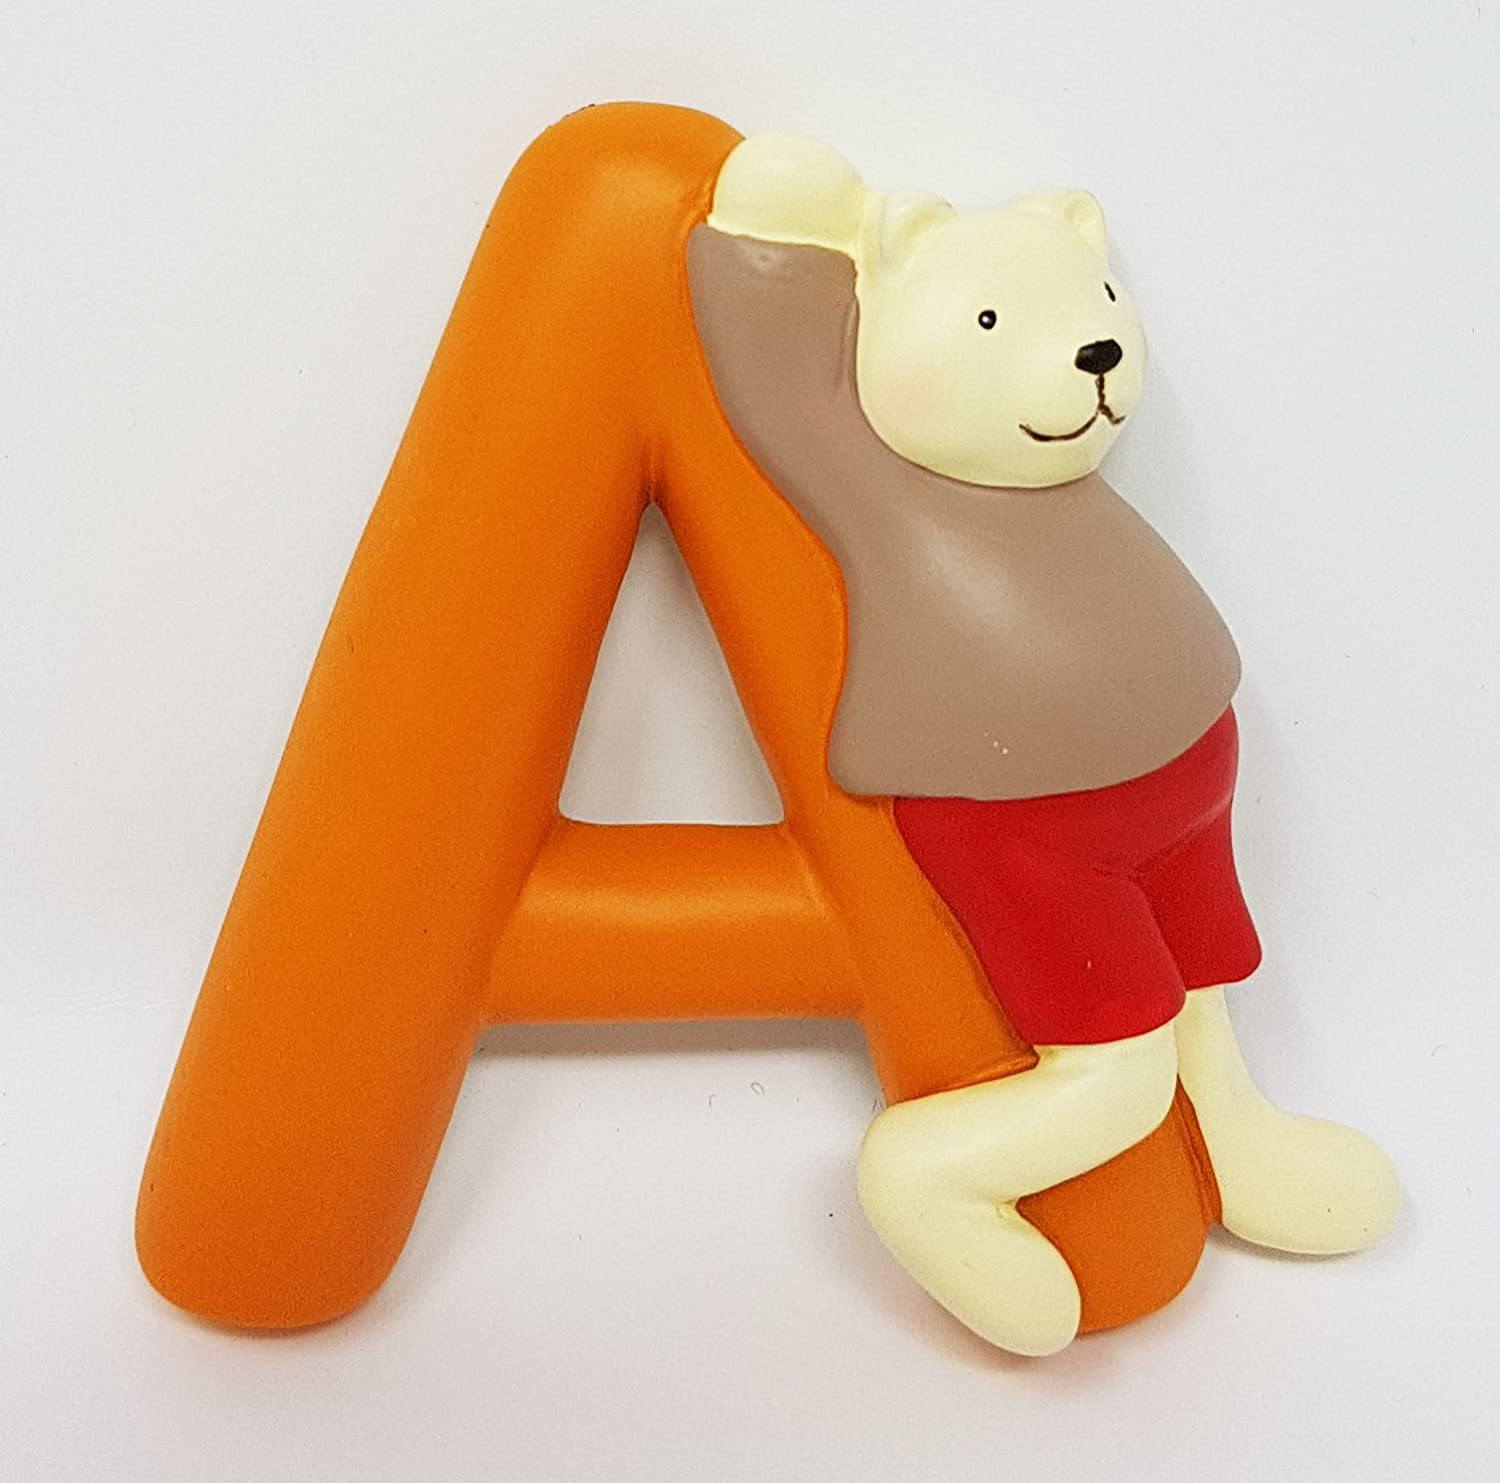 Moulin Roty - Lettre Alphabet A Orange 7cm 632837